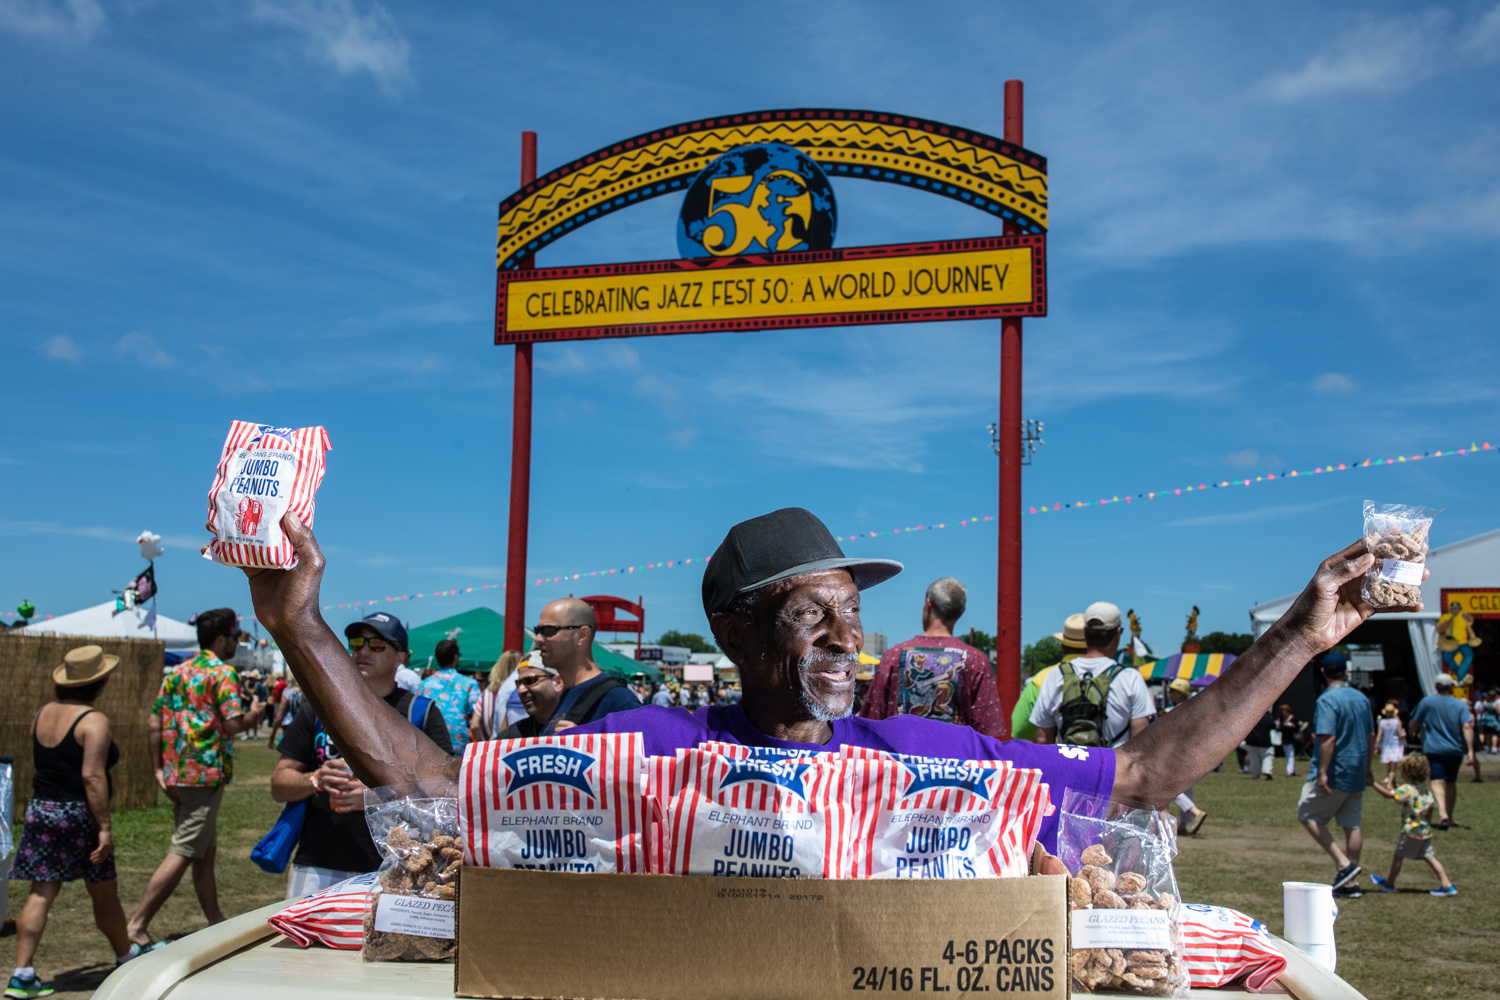 Lucius Thomson, hawking peanuts for 37 years at Jazz Fest!